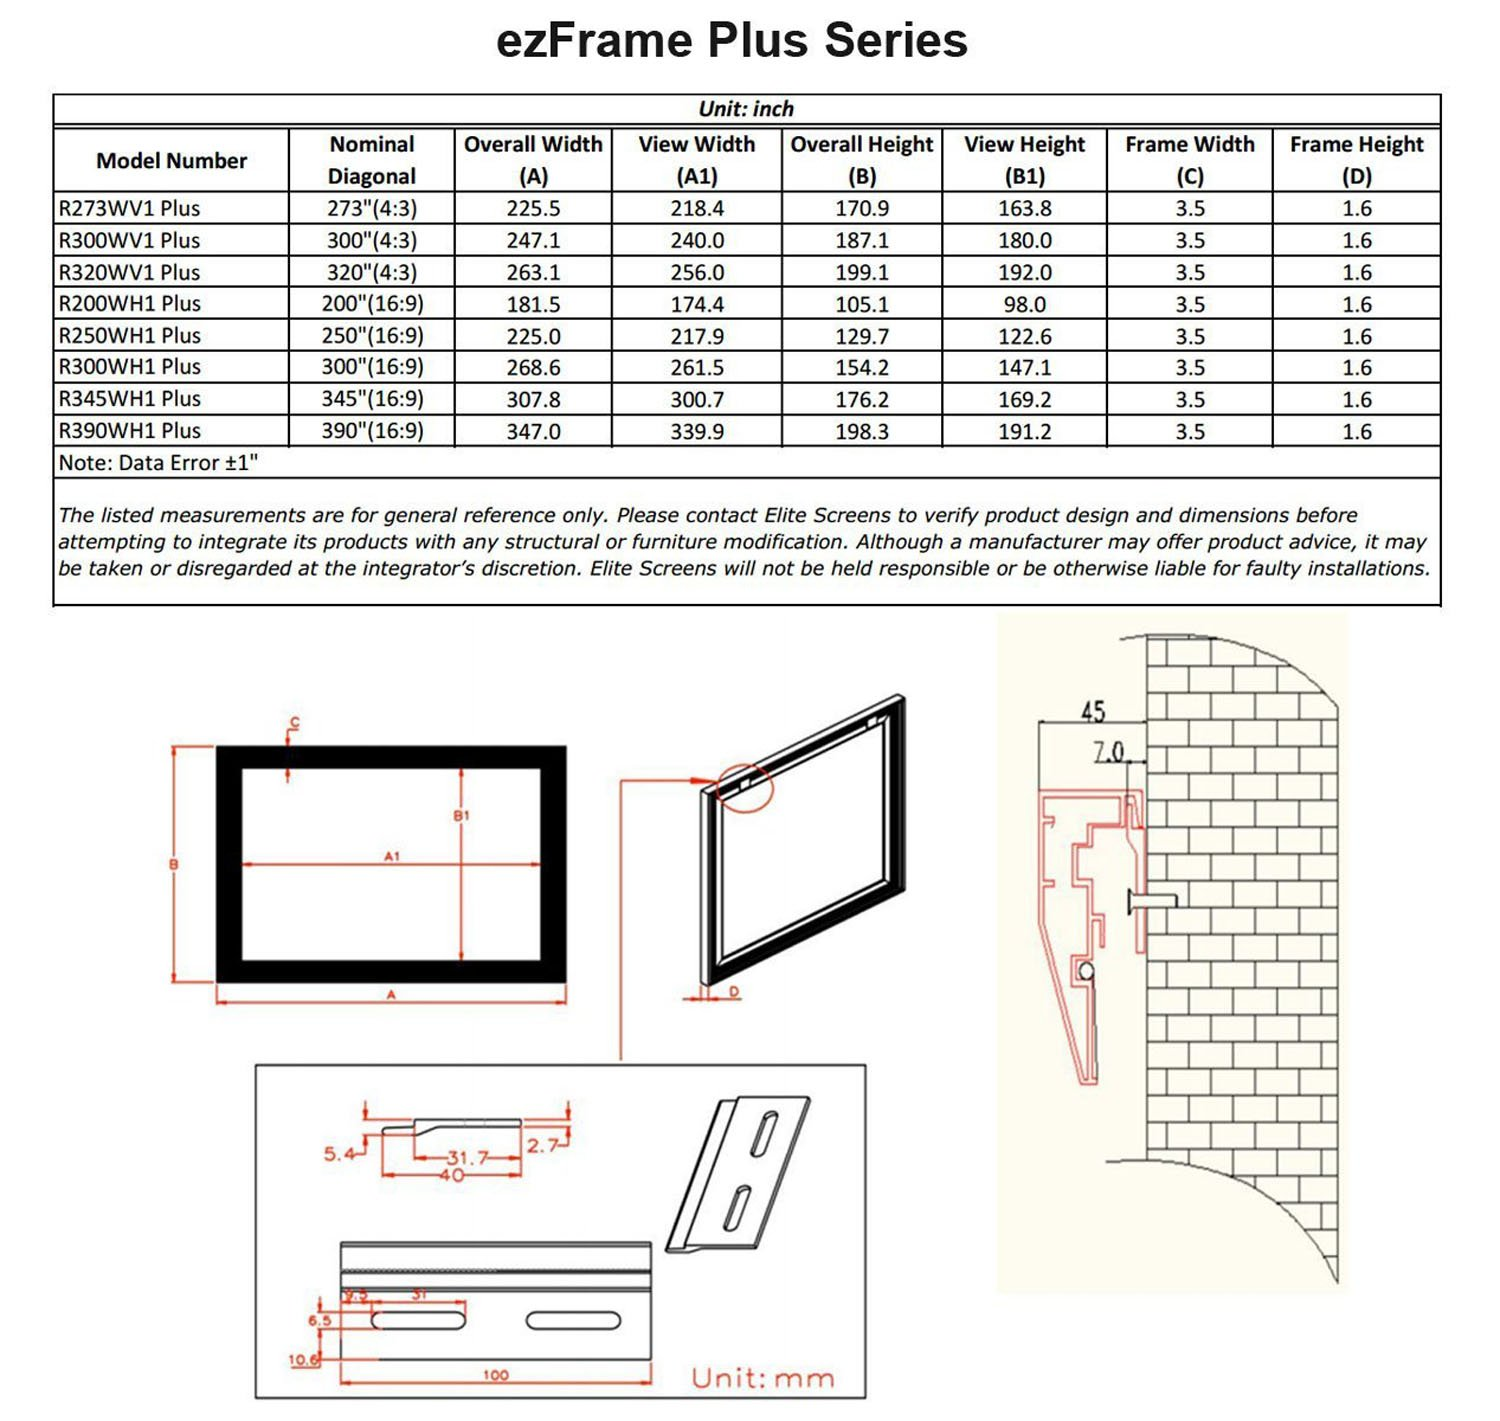 Elite Screens ezFrame Plus Series, 345-inch Diagonal 16:9, Fixed Frame Home Theater Projection Screen, Model: R345WH1 PLUS